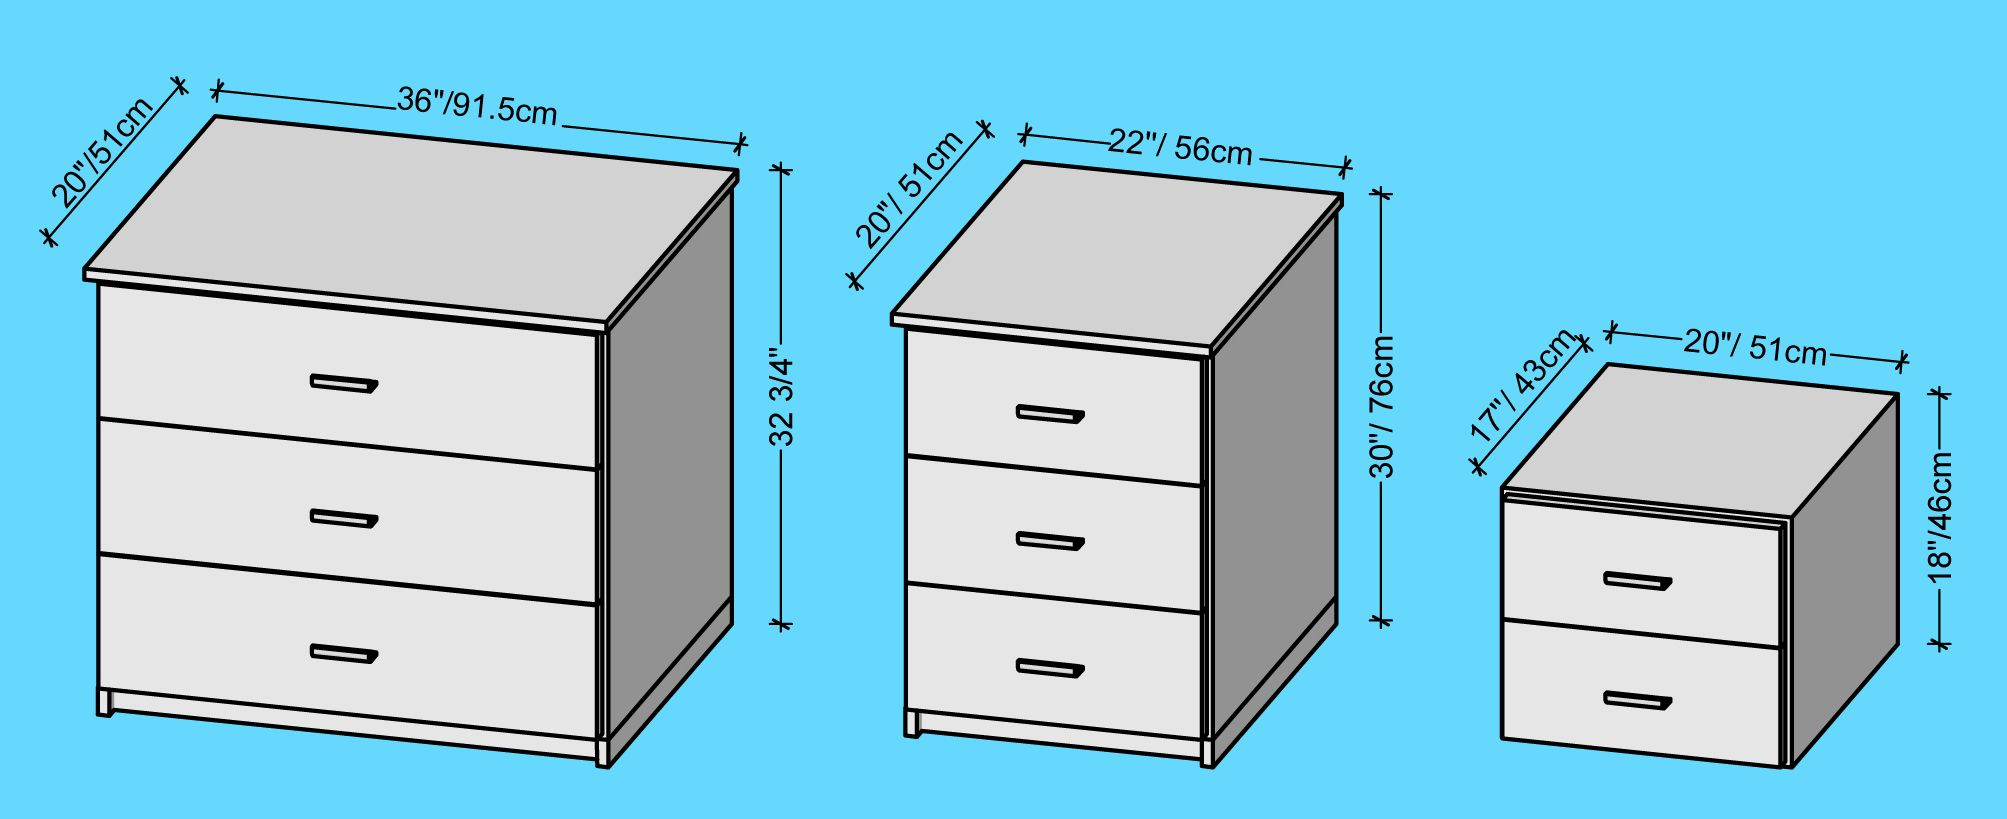 Image result for height of bedside table Ergonomics